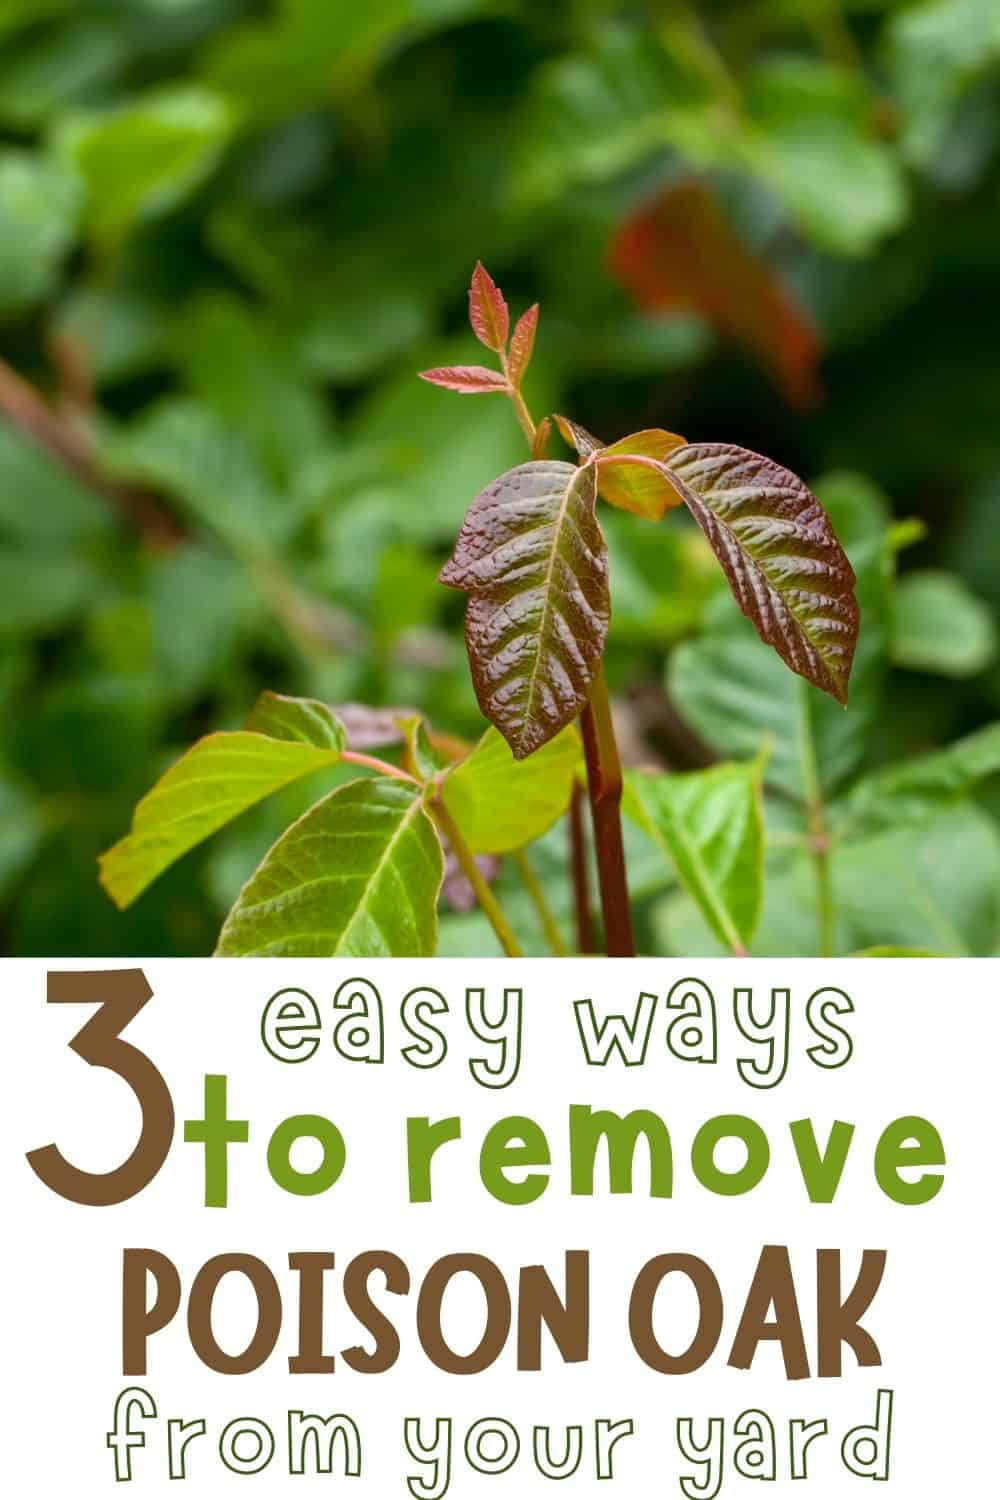 3 easy ways to remove poison oak from your yard